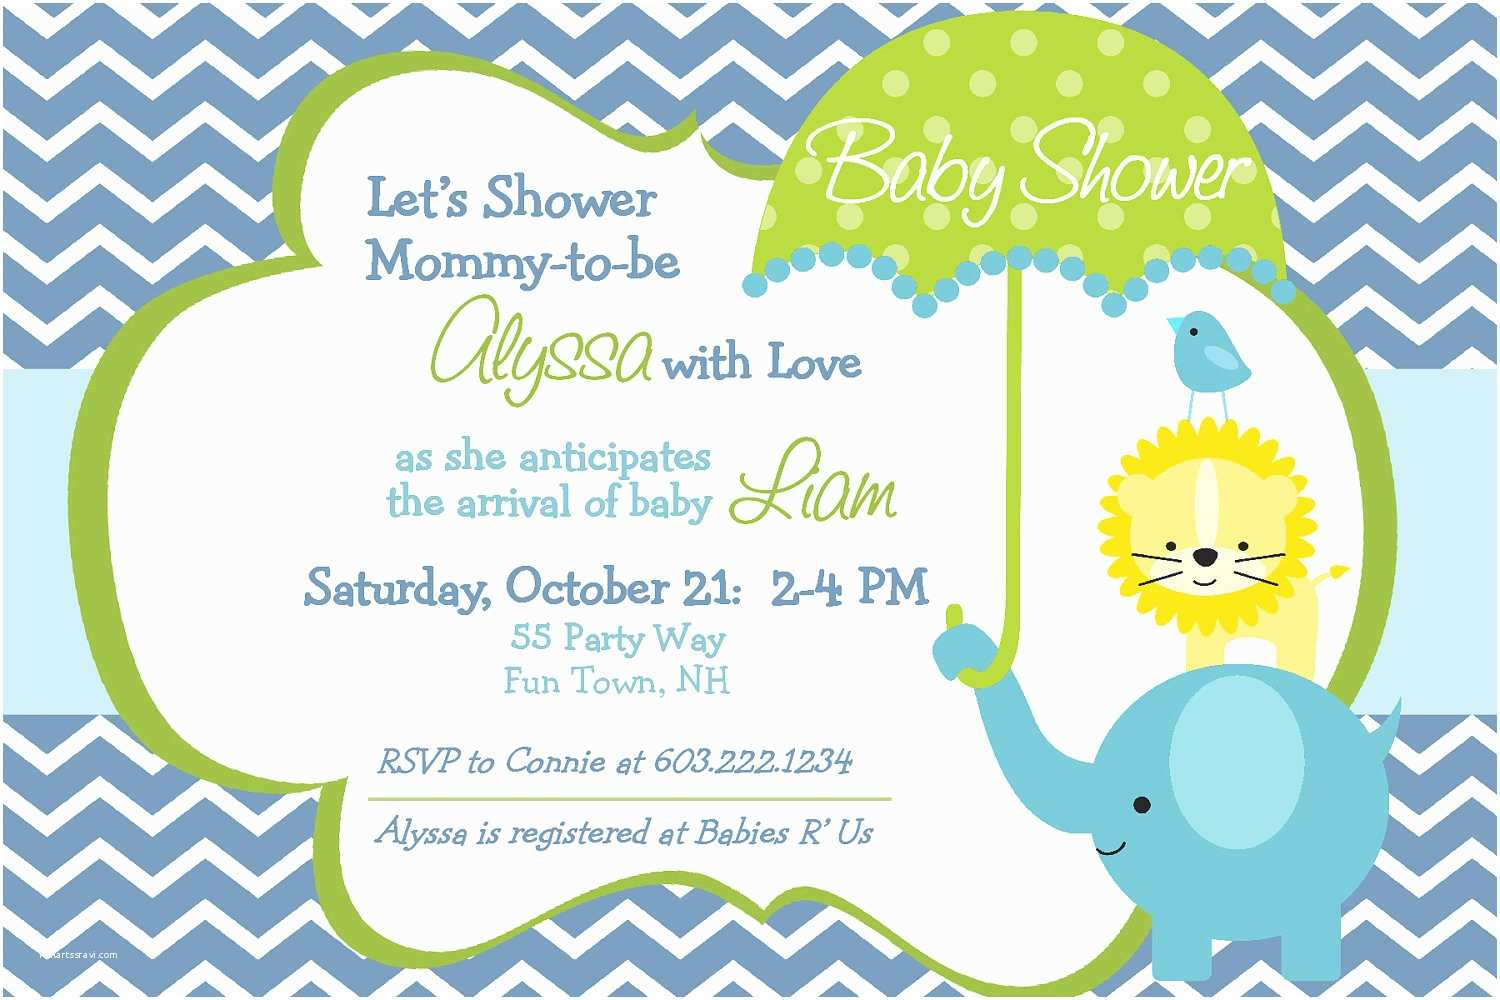 Downloadable Baby Shower Invitations Baby Shower Invitations for Boy & Girls Baby Shower